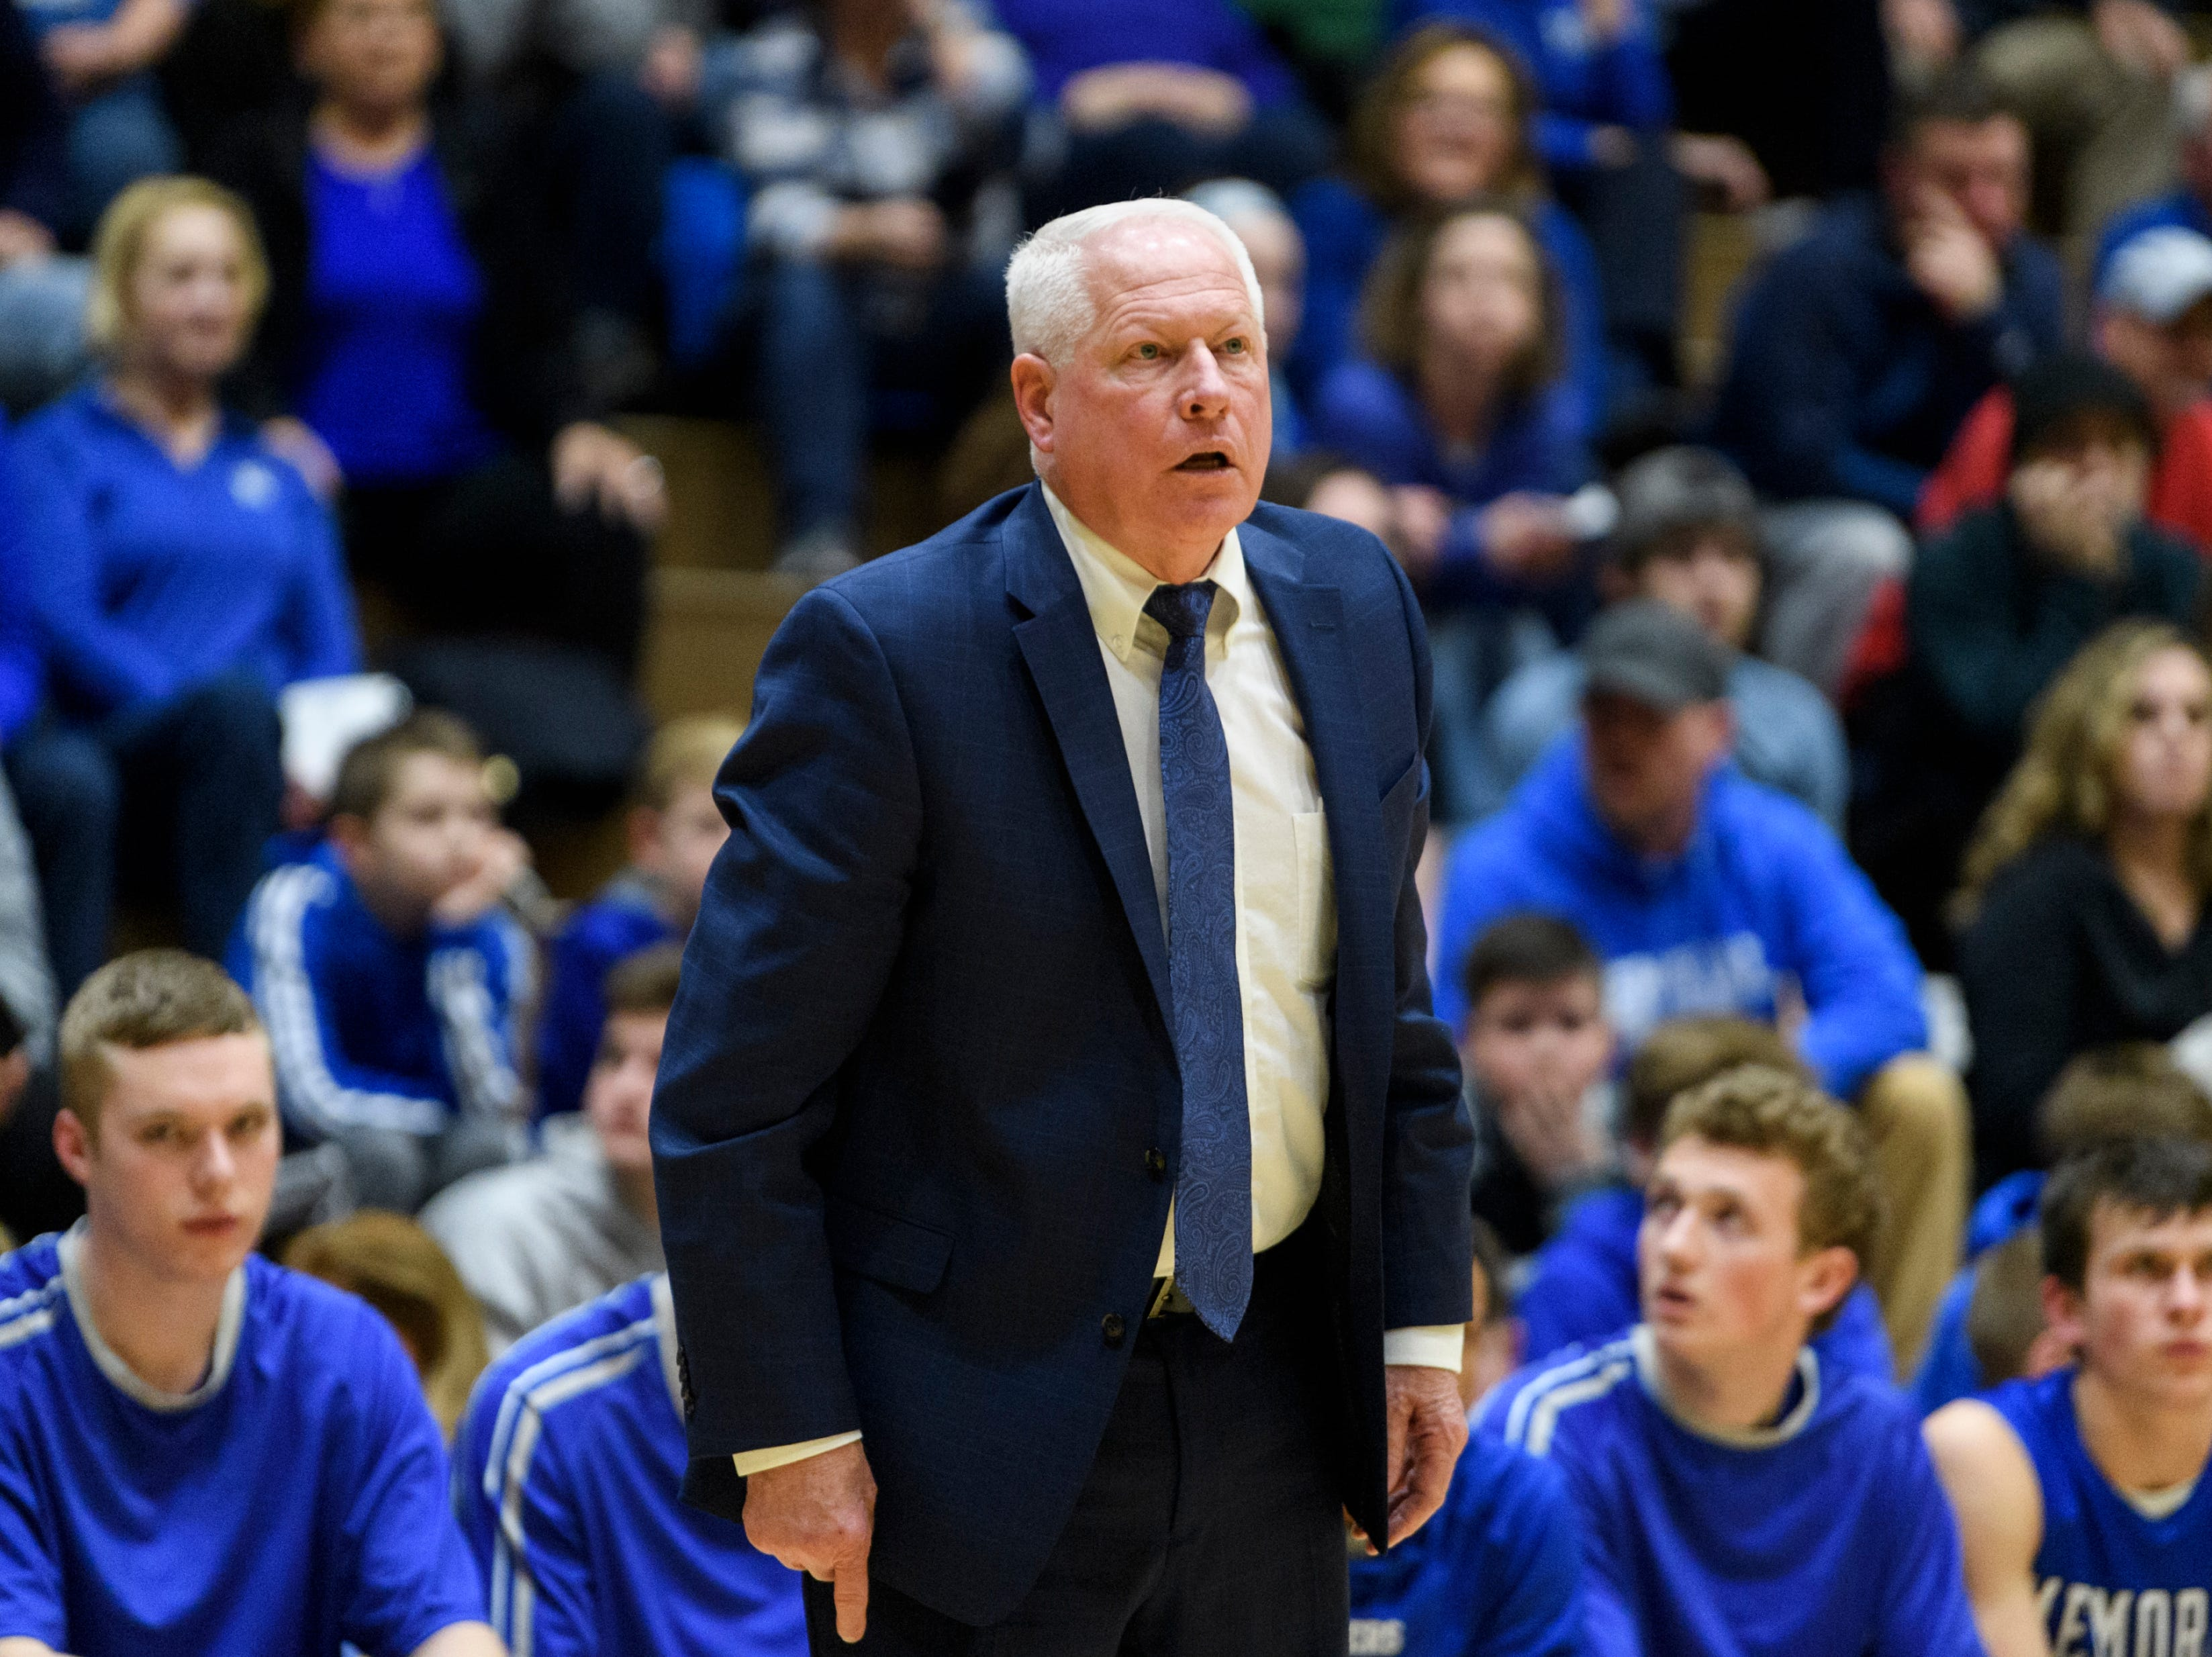 Memorial Head Coach Rick Wilgus watches his team take on the Castle Knights at Castle High School in Newburgh, Ind., Friday, Jan. 4, 2019. The Knights defeated the Tigers, 72-43.